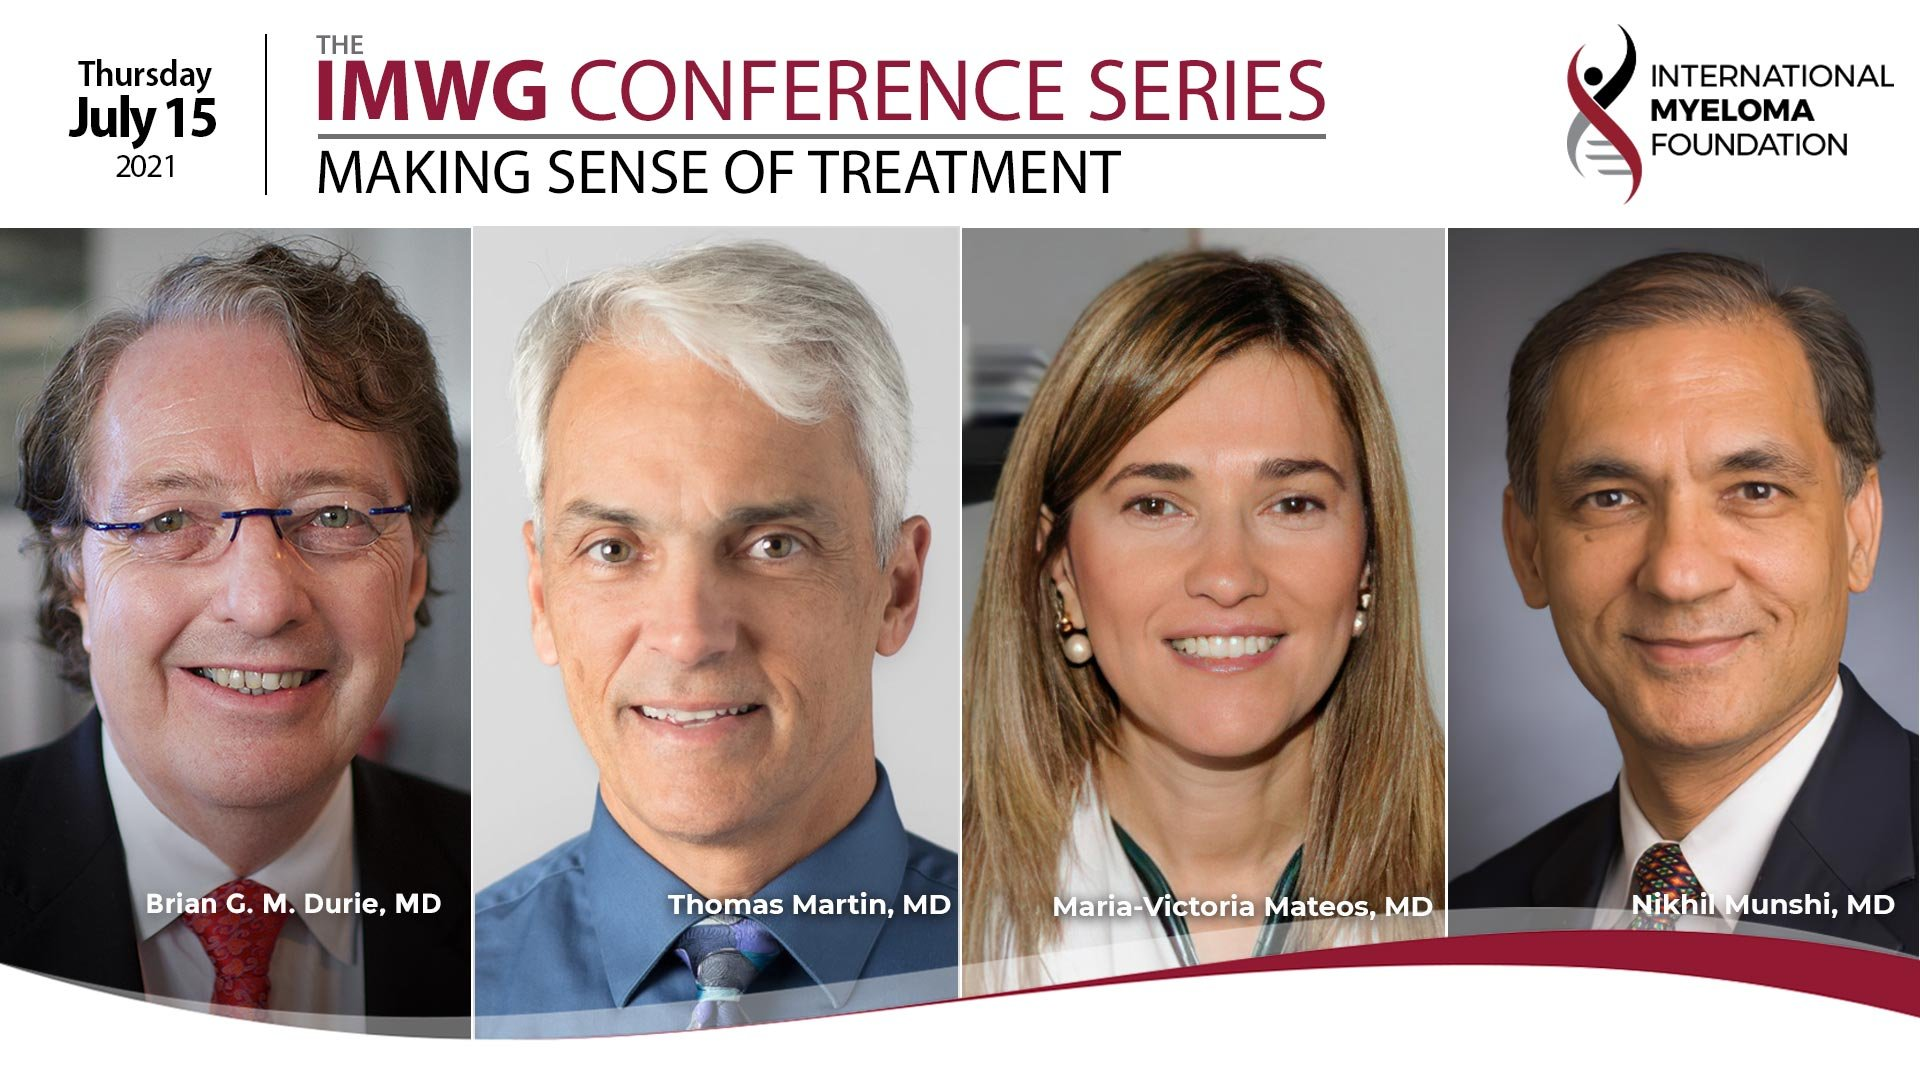 IMWG Conference Series ASCO 2021